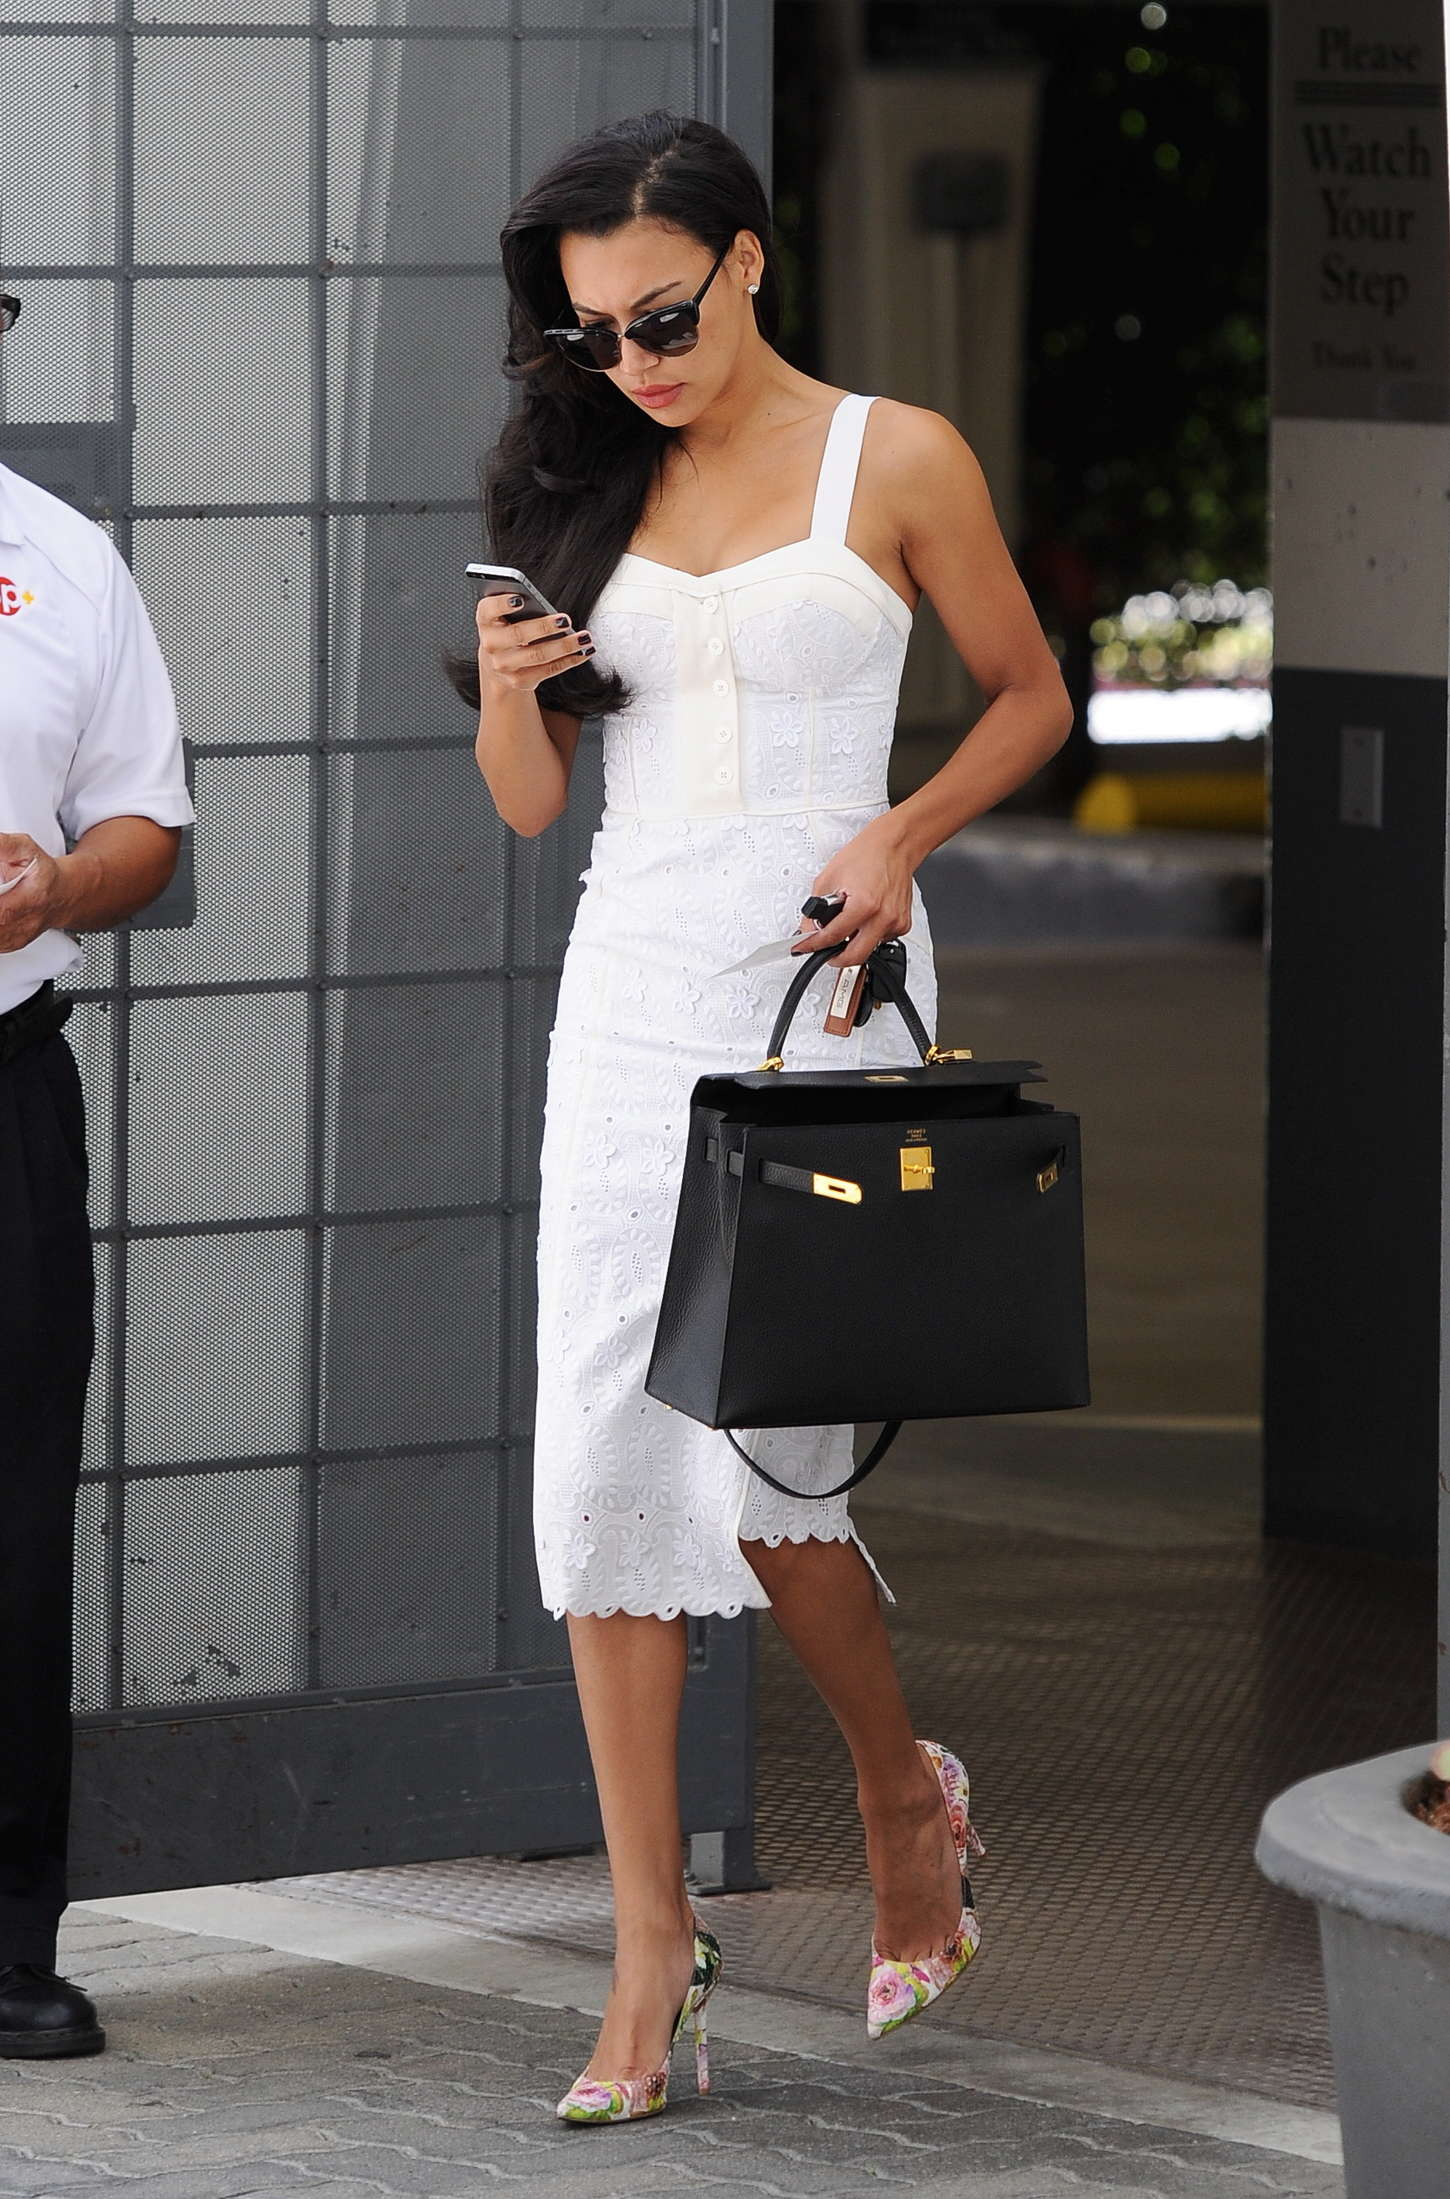 Emejing White Dress Size 18 Pictures - Mikejaninesmith.us ...